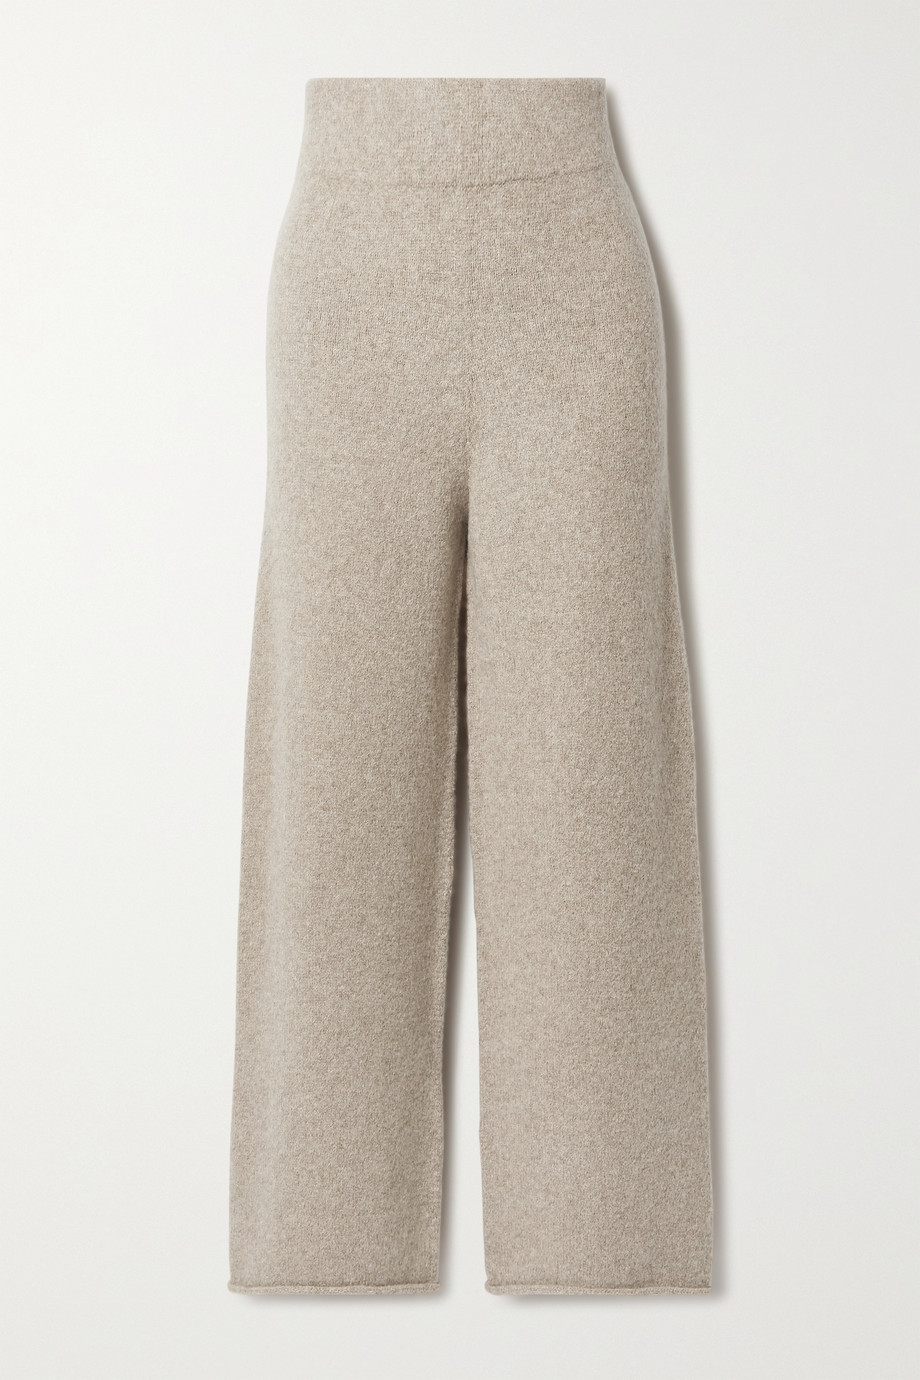 Lauren Manoogian + NET SUSTAIN Miter alpaca wide-leg pants